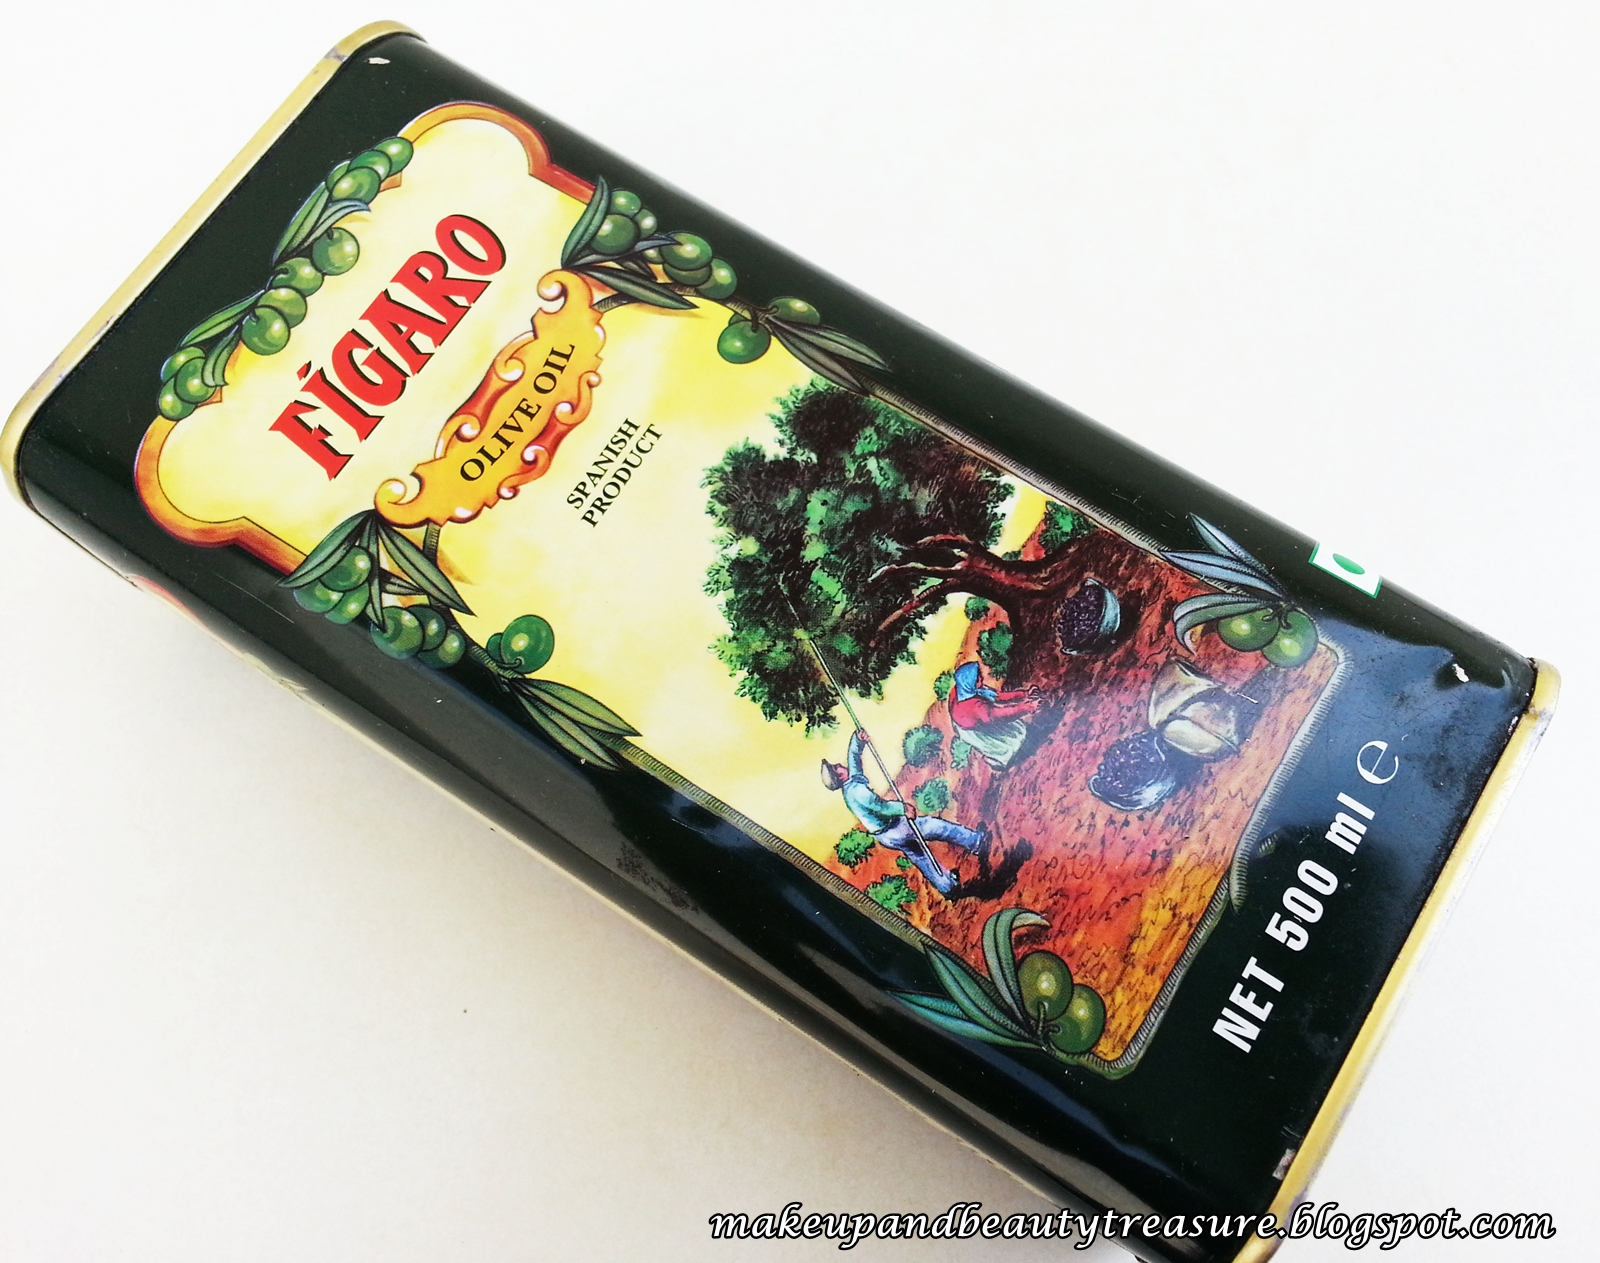 Makeup And Beauty Treasure Figaro Olive Oil Review